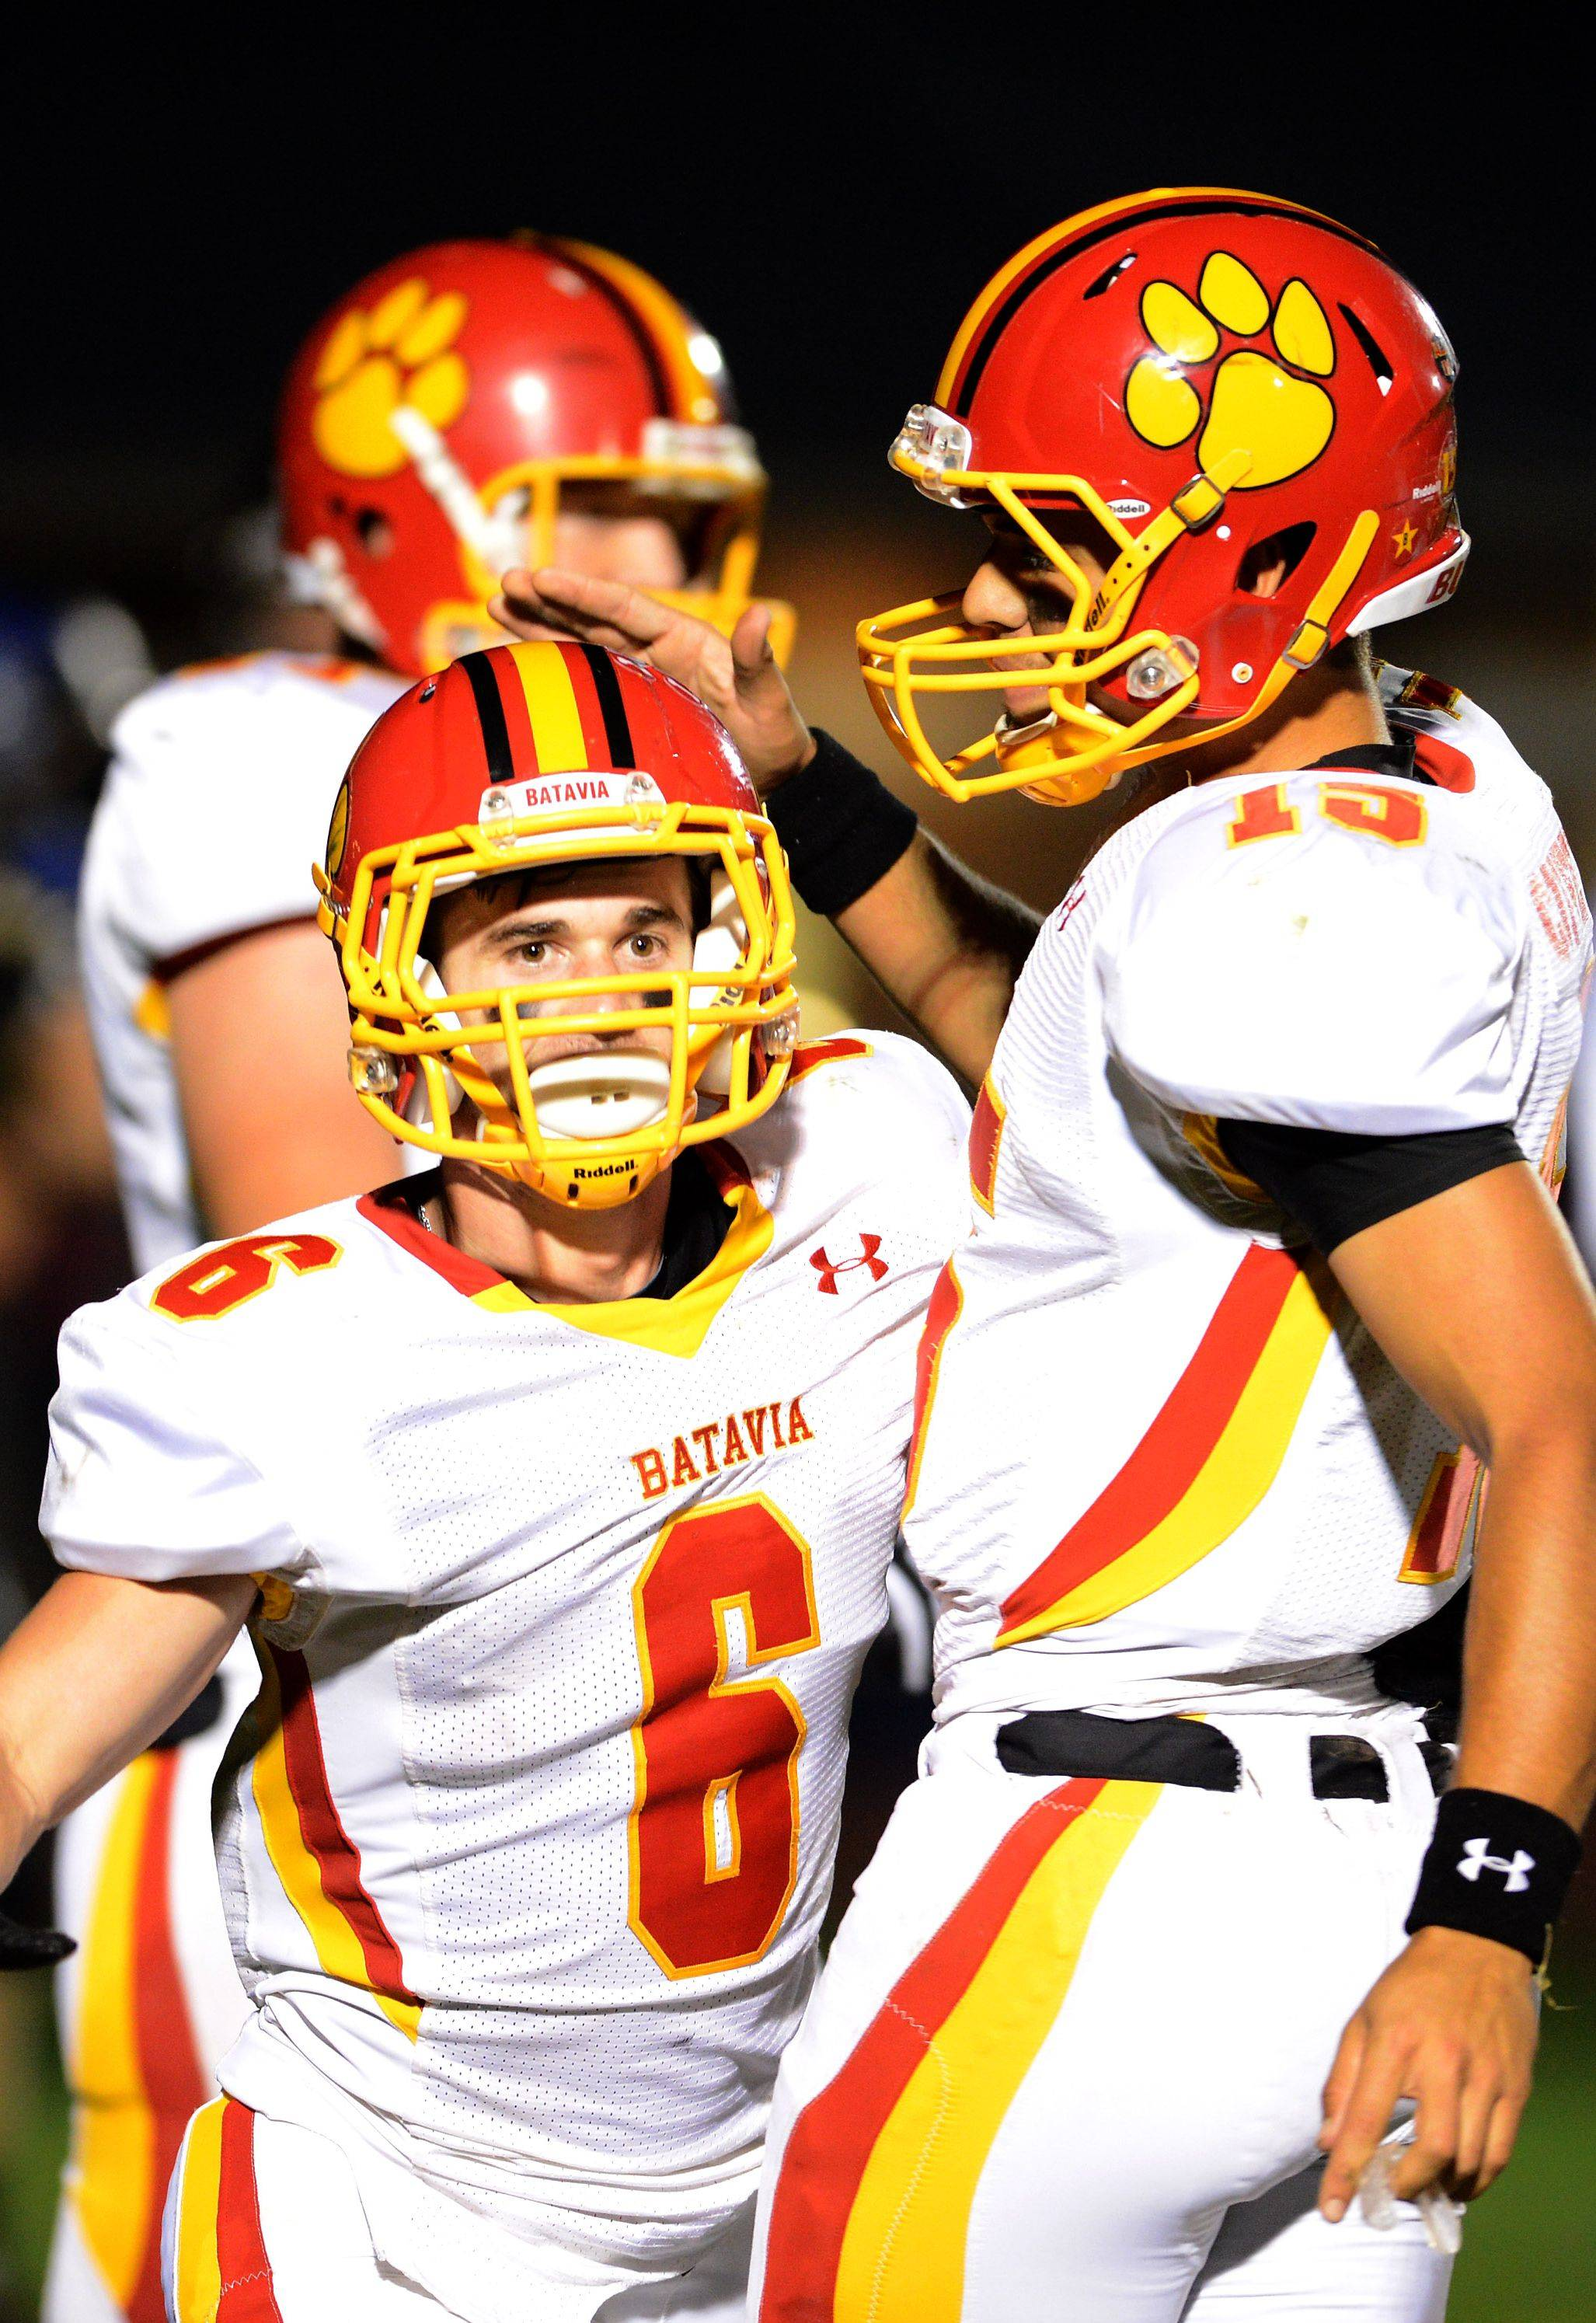 Rourke Mullins and Micah Coffey connected for a touchdown in Batavia's win last week over Elgin and will look to put many more points on the board in its playoff opener Friday against DeKalb.